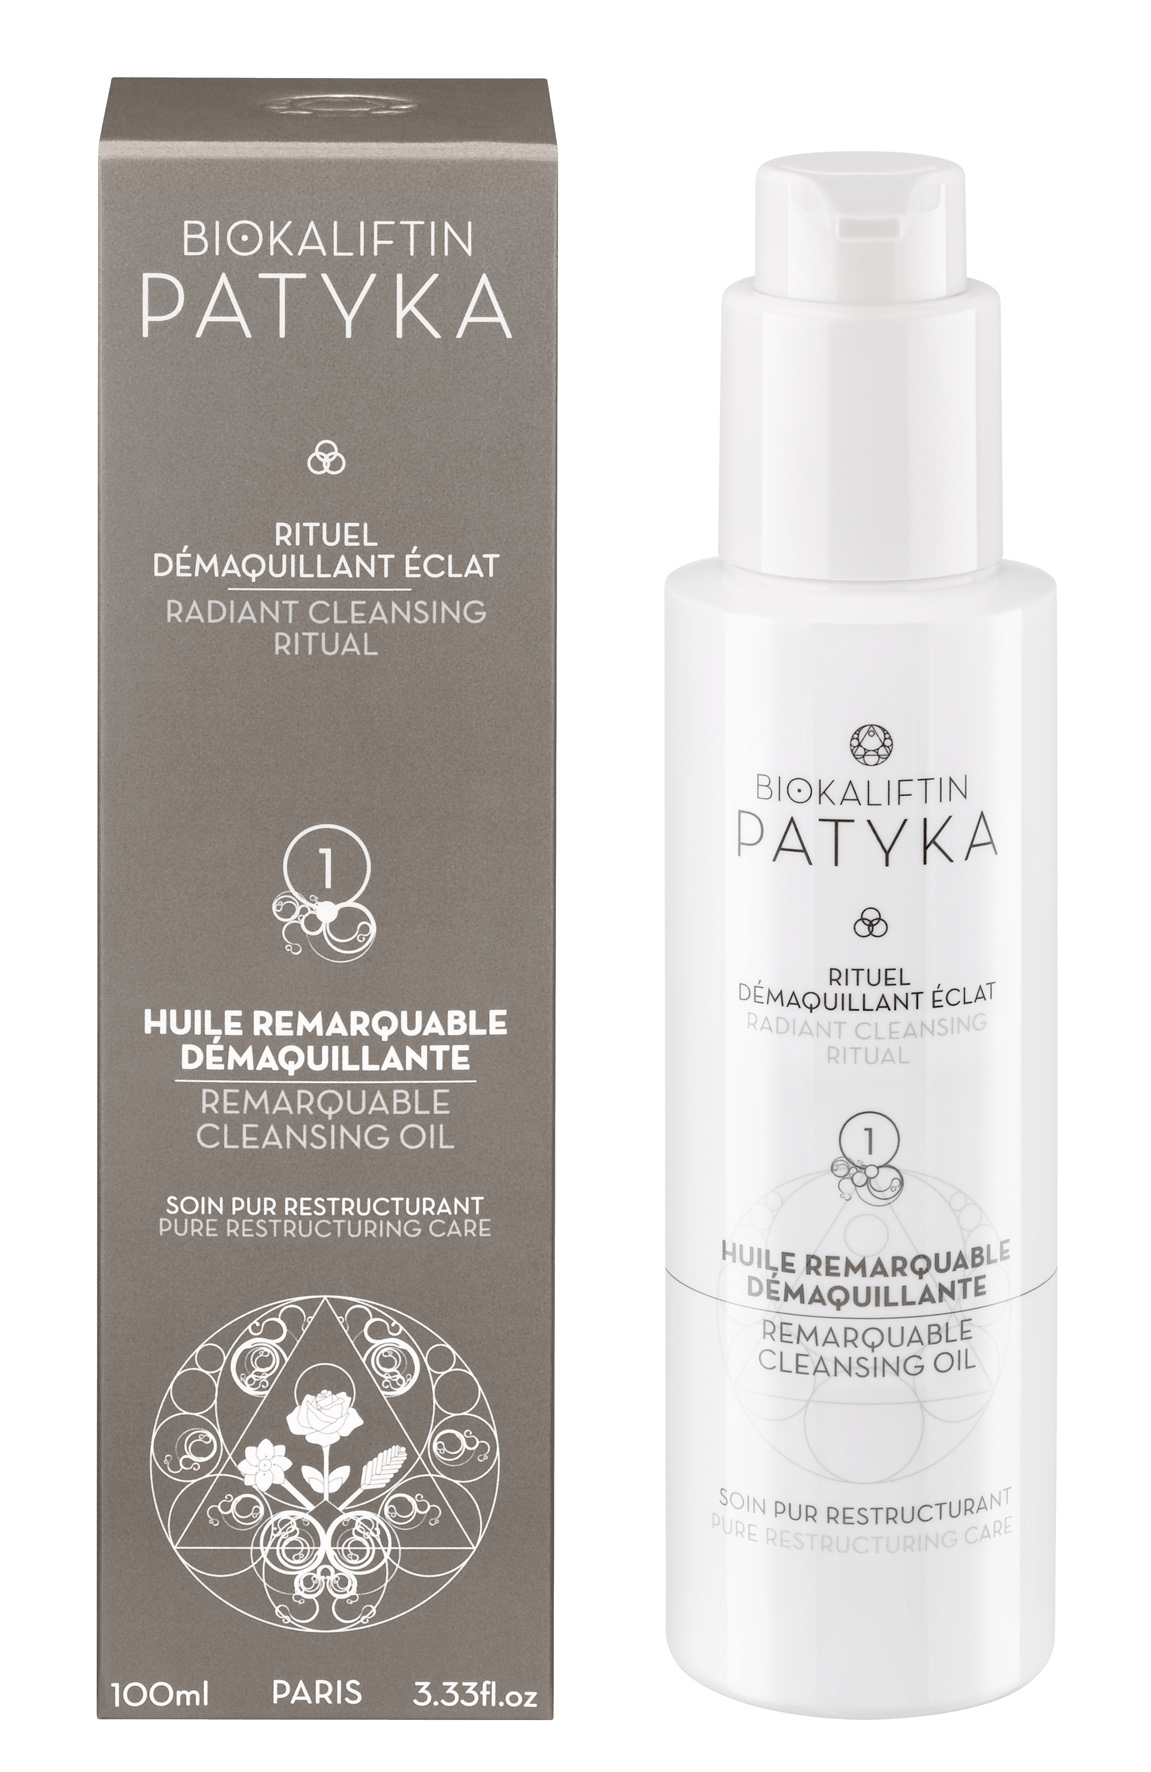 Hydrating the Skin Before Cleansing – New Remarquable Cleansing Oil by Patyka